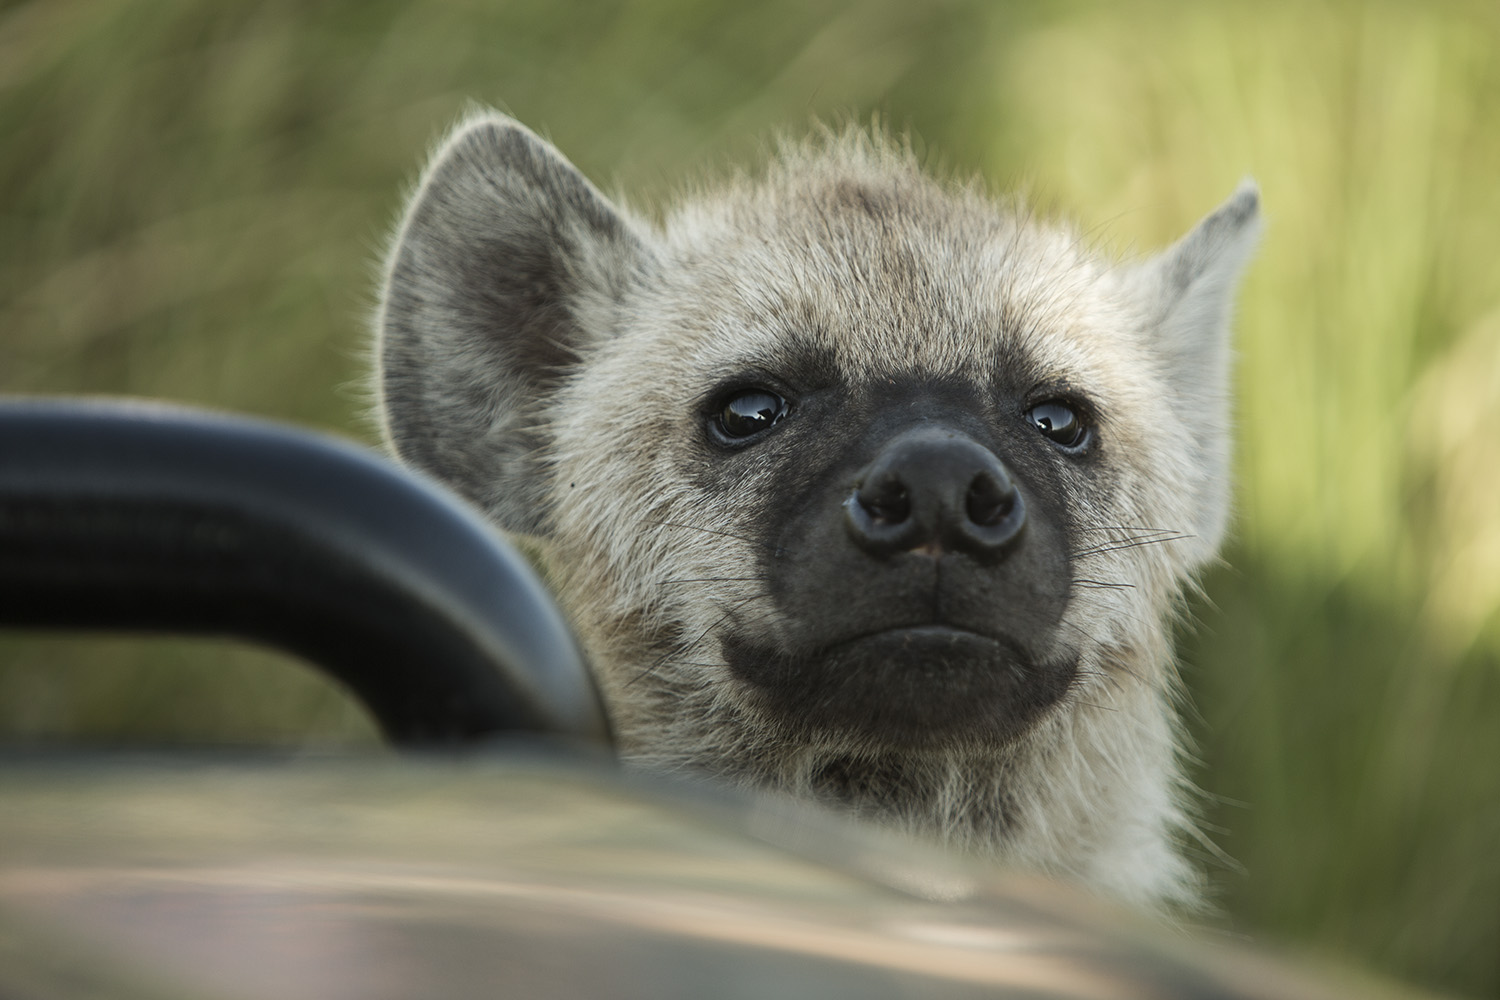 Hyena baby and car